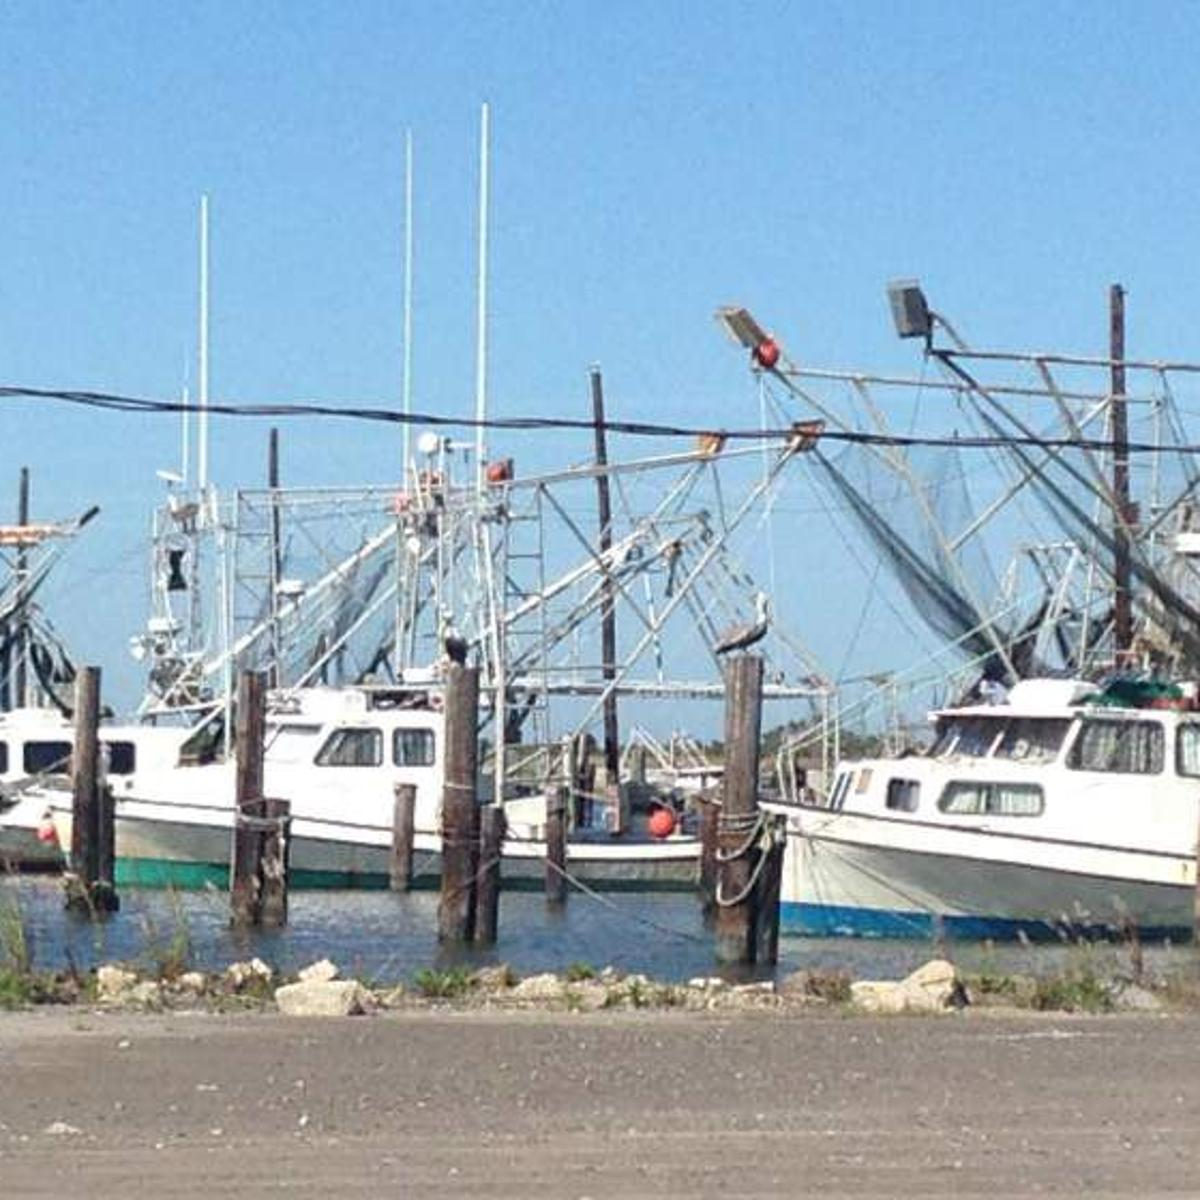 Oceana report calls on more trawls to be equipped with TEDs, and for